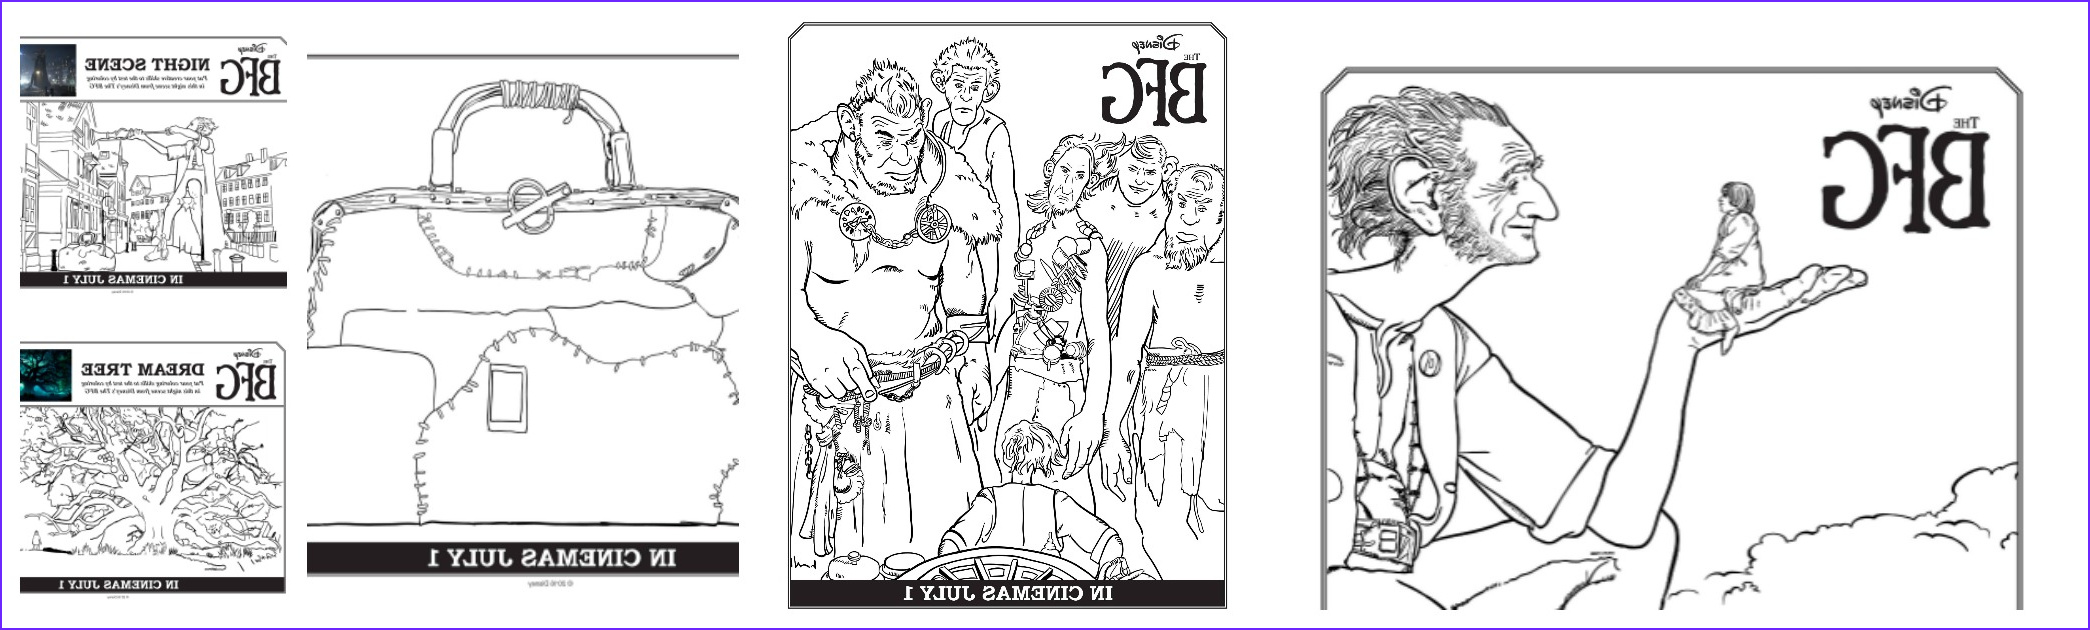 Bfg Coloring Pages Best Of Images Disney S the Bfg Featurette Sweepstakes and Coloring